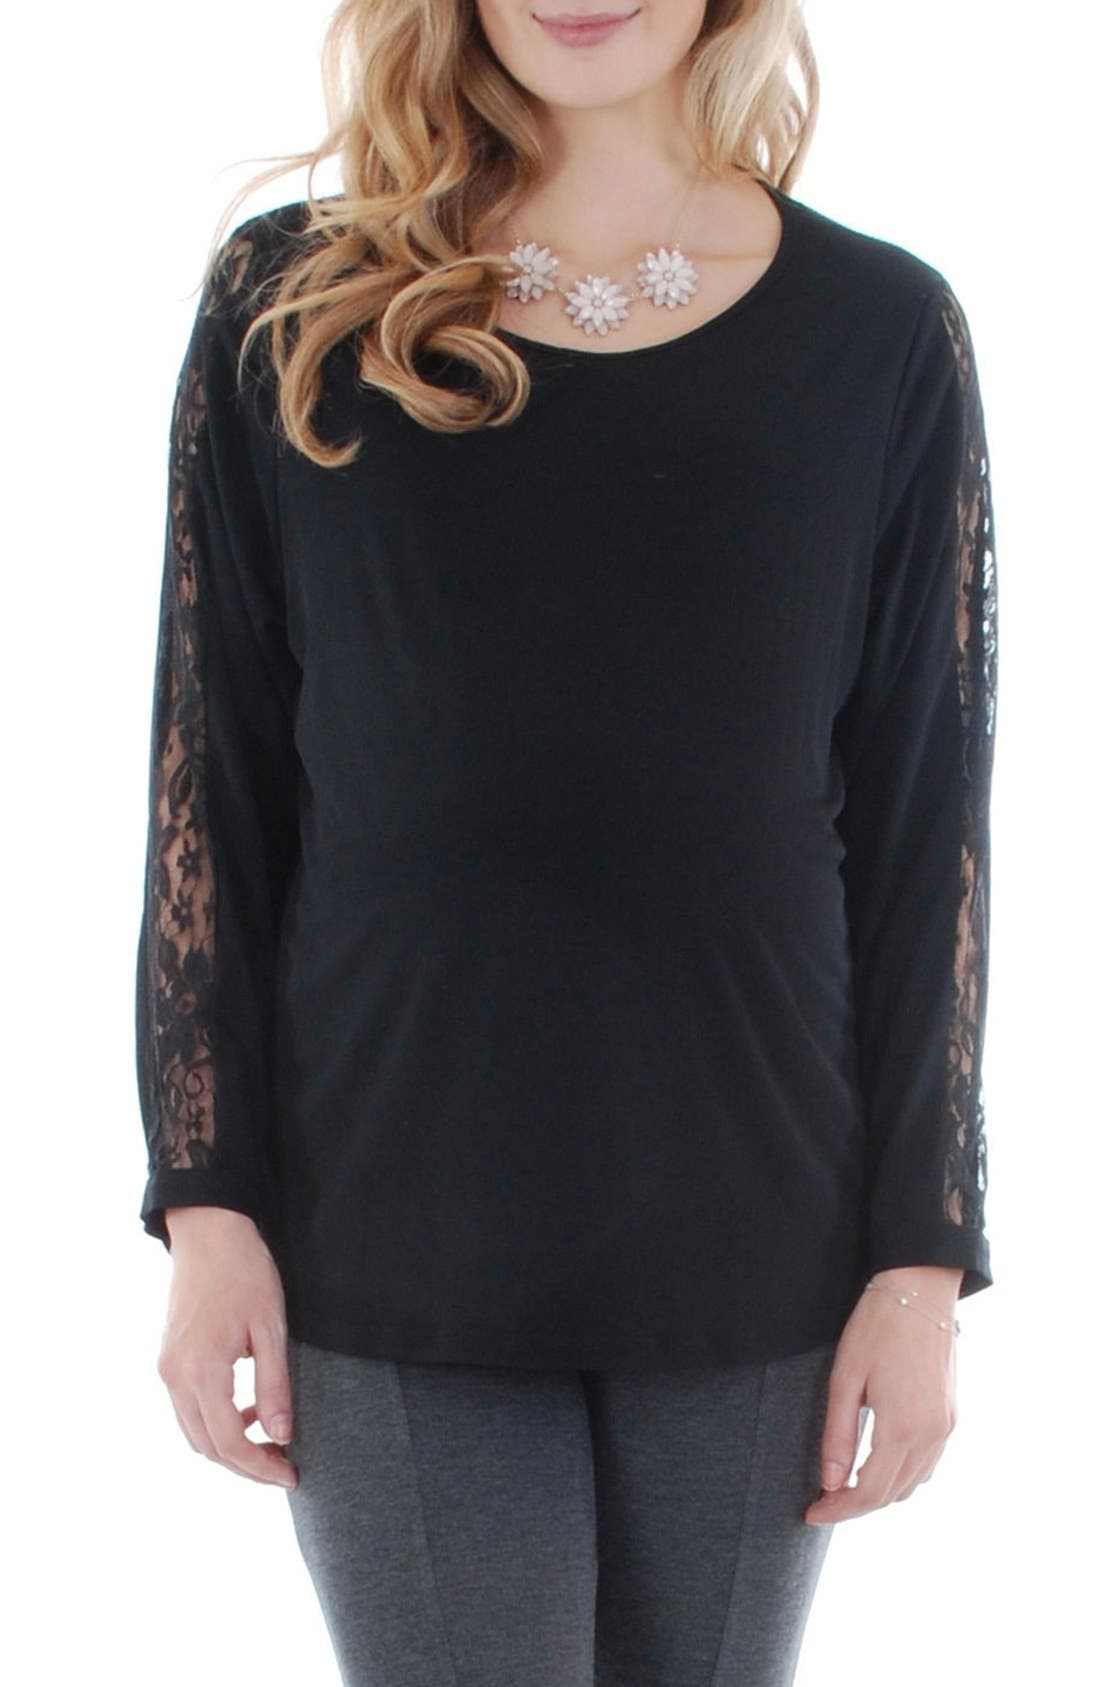 Everly Grey Kira Lace Sleeve Maternity Top